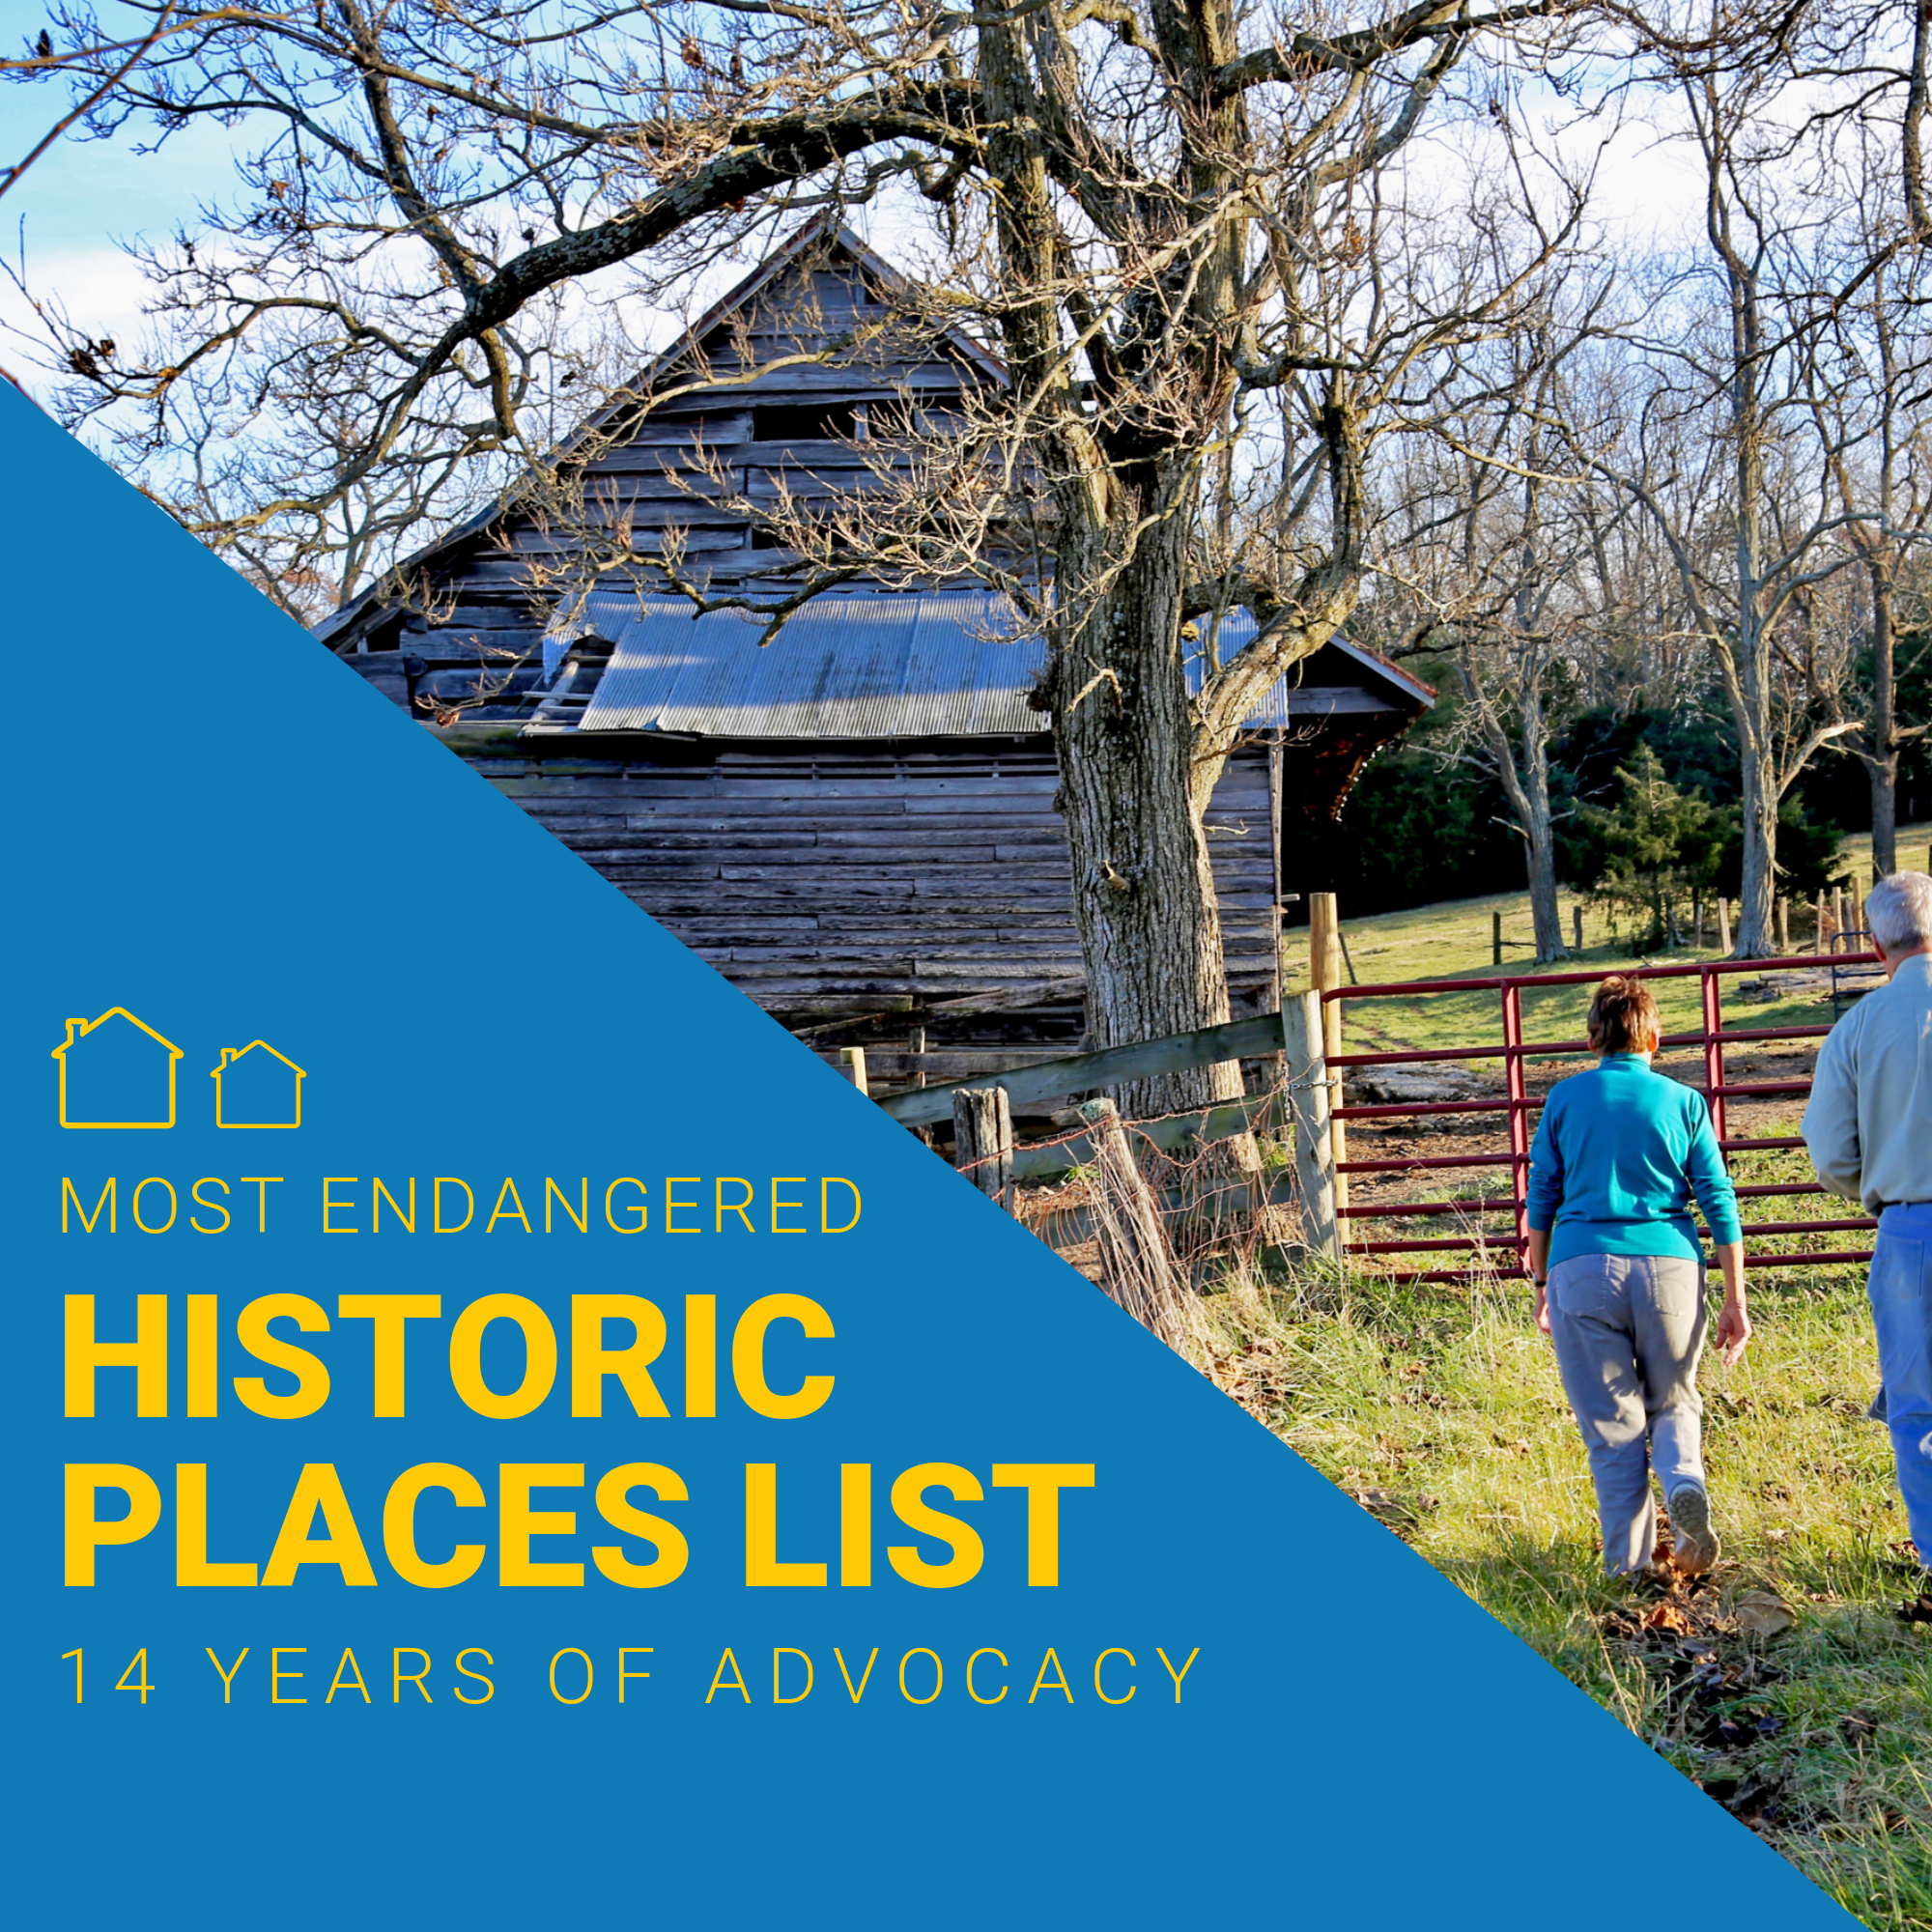 Most Endangered Historic Places